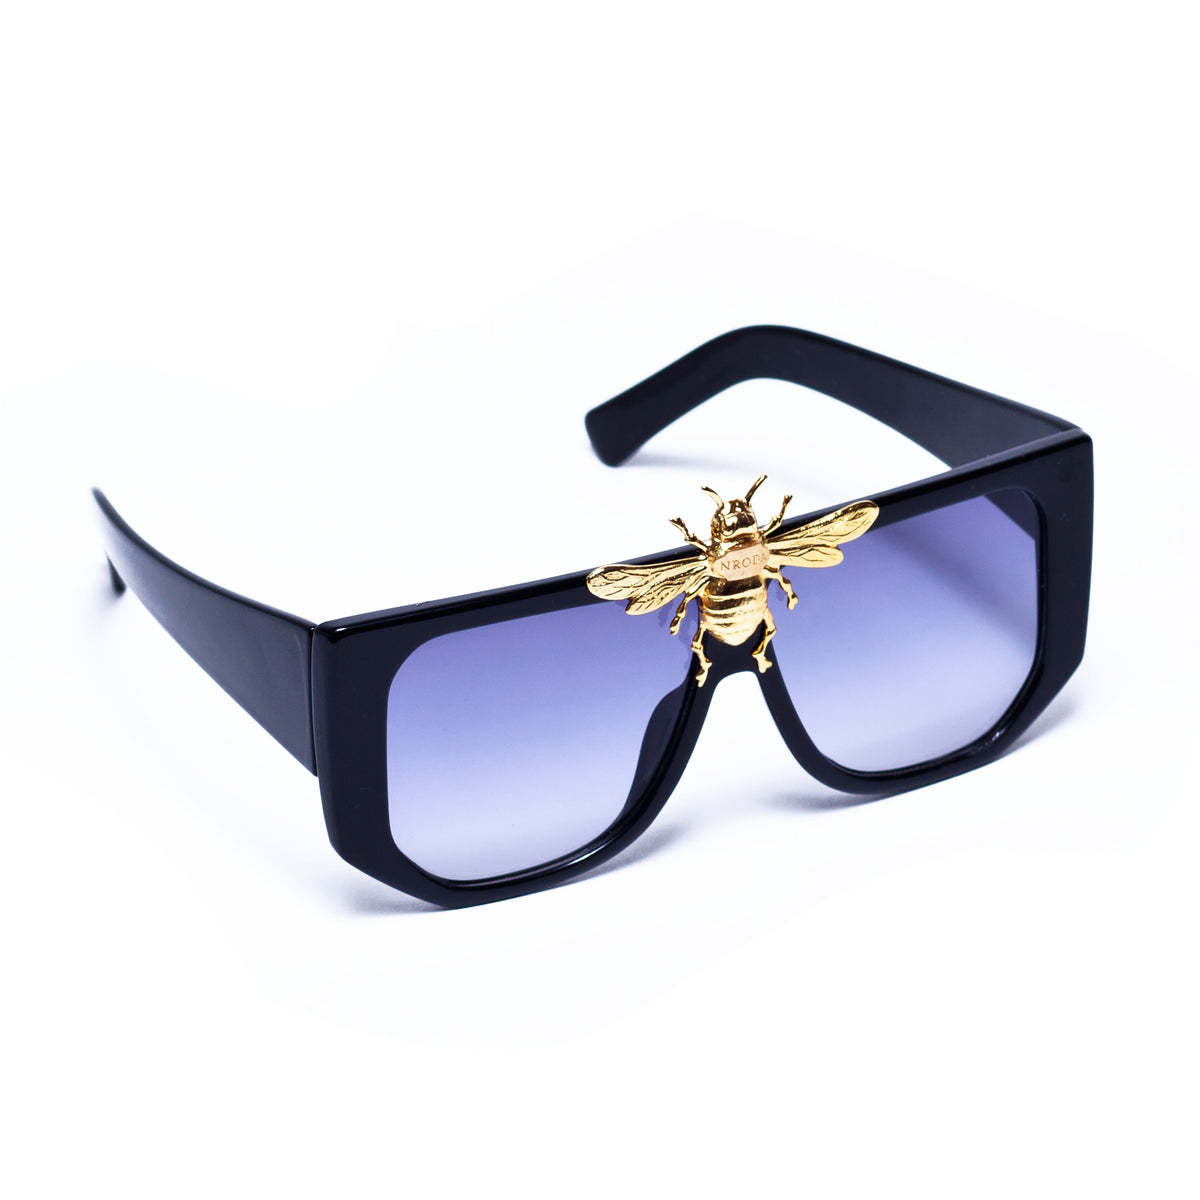 POWER MOVES - Black Out Series  SUNNIES + OPTICS Sunglasses Collection, Tnemnroda man- NRODA